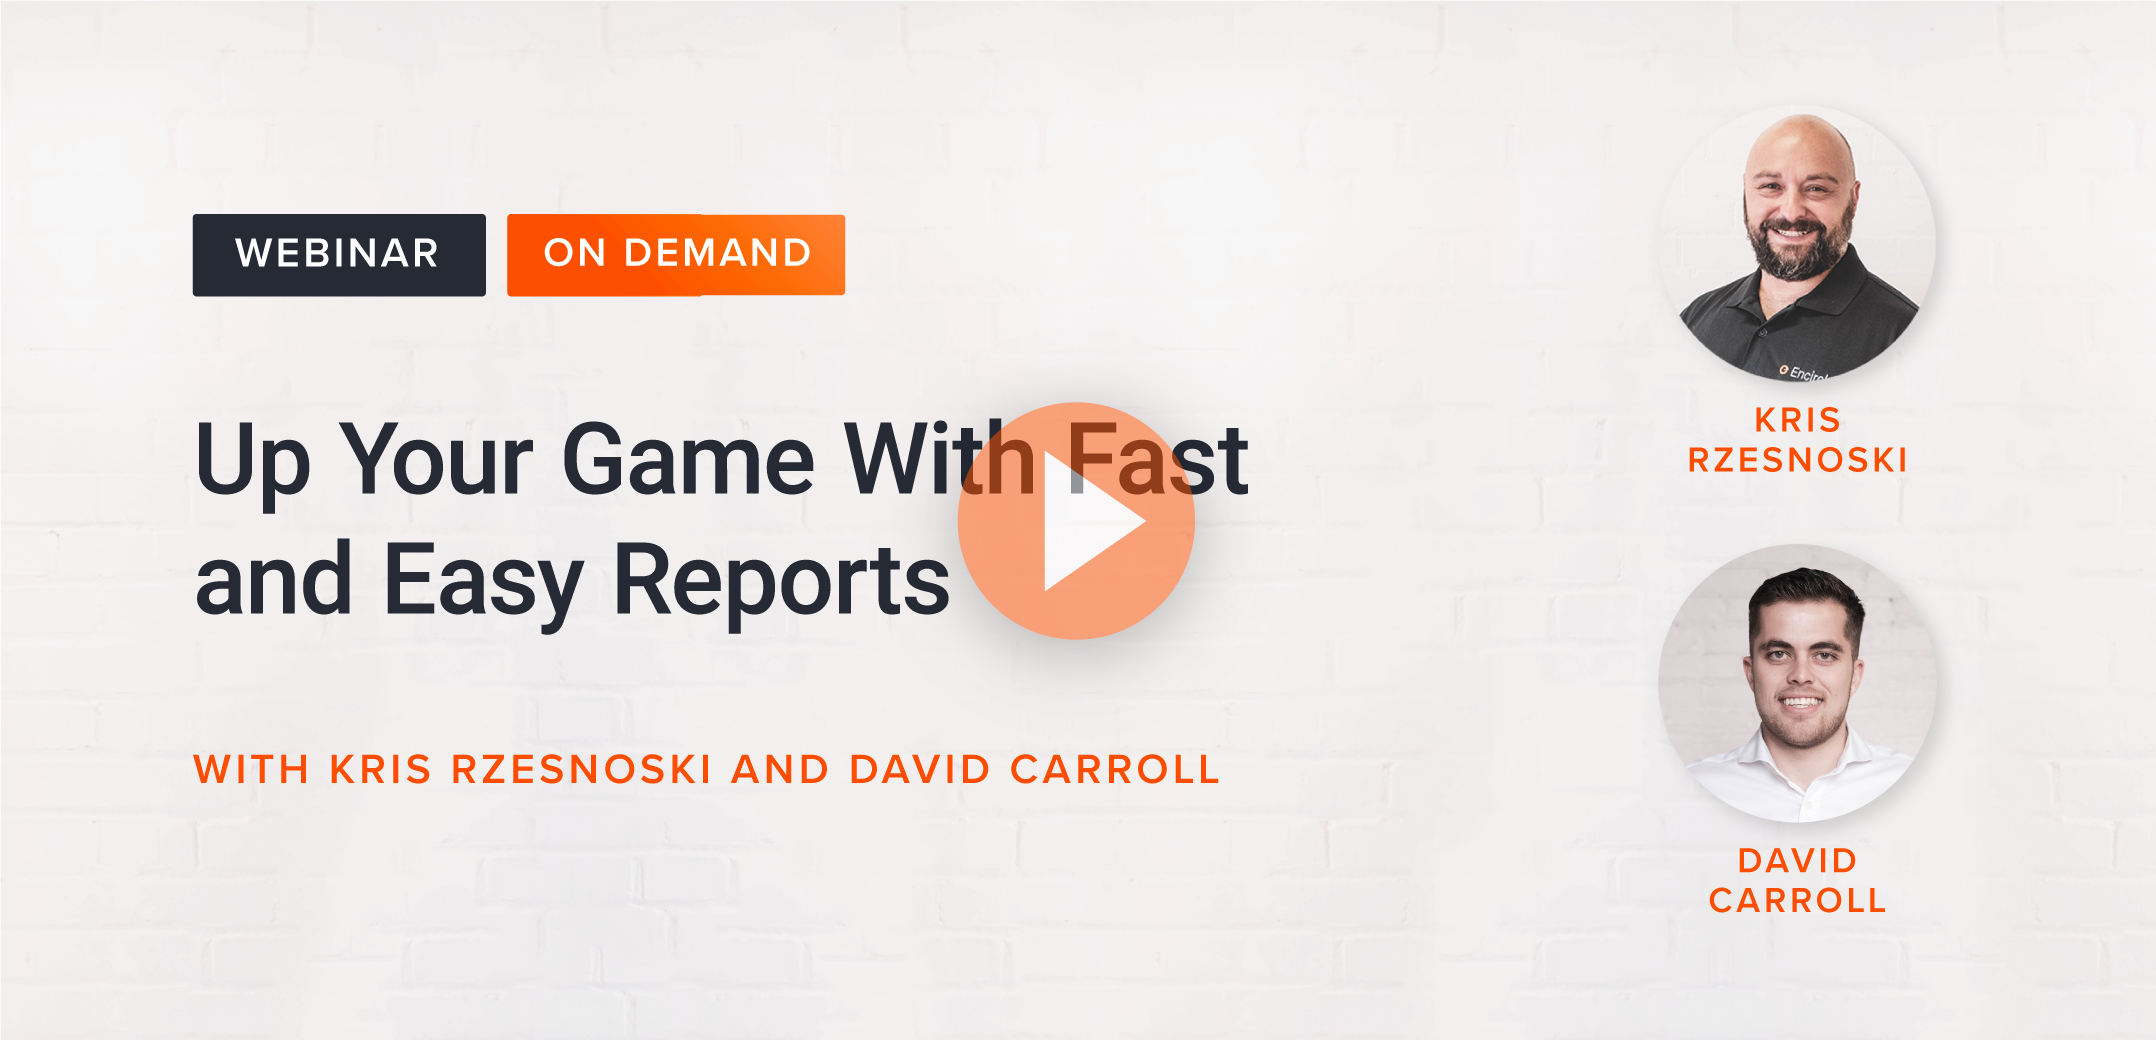 Up Your Game With Fast and Easy Reports